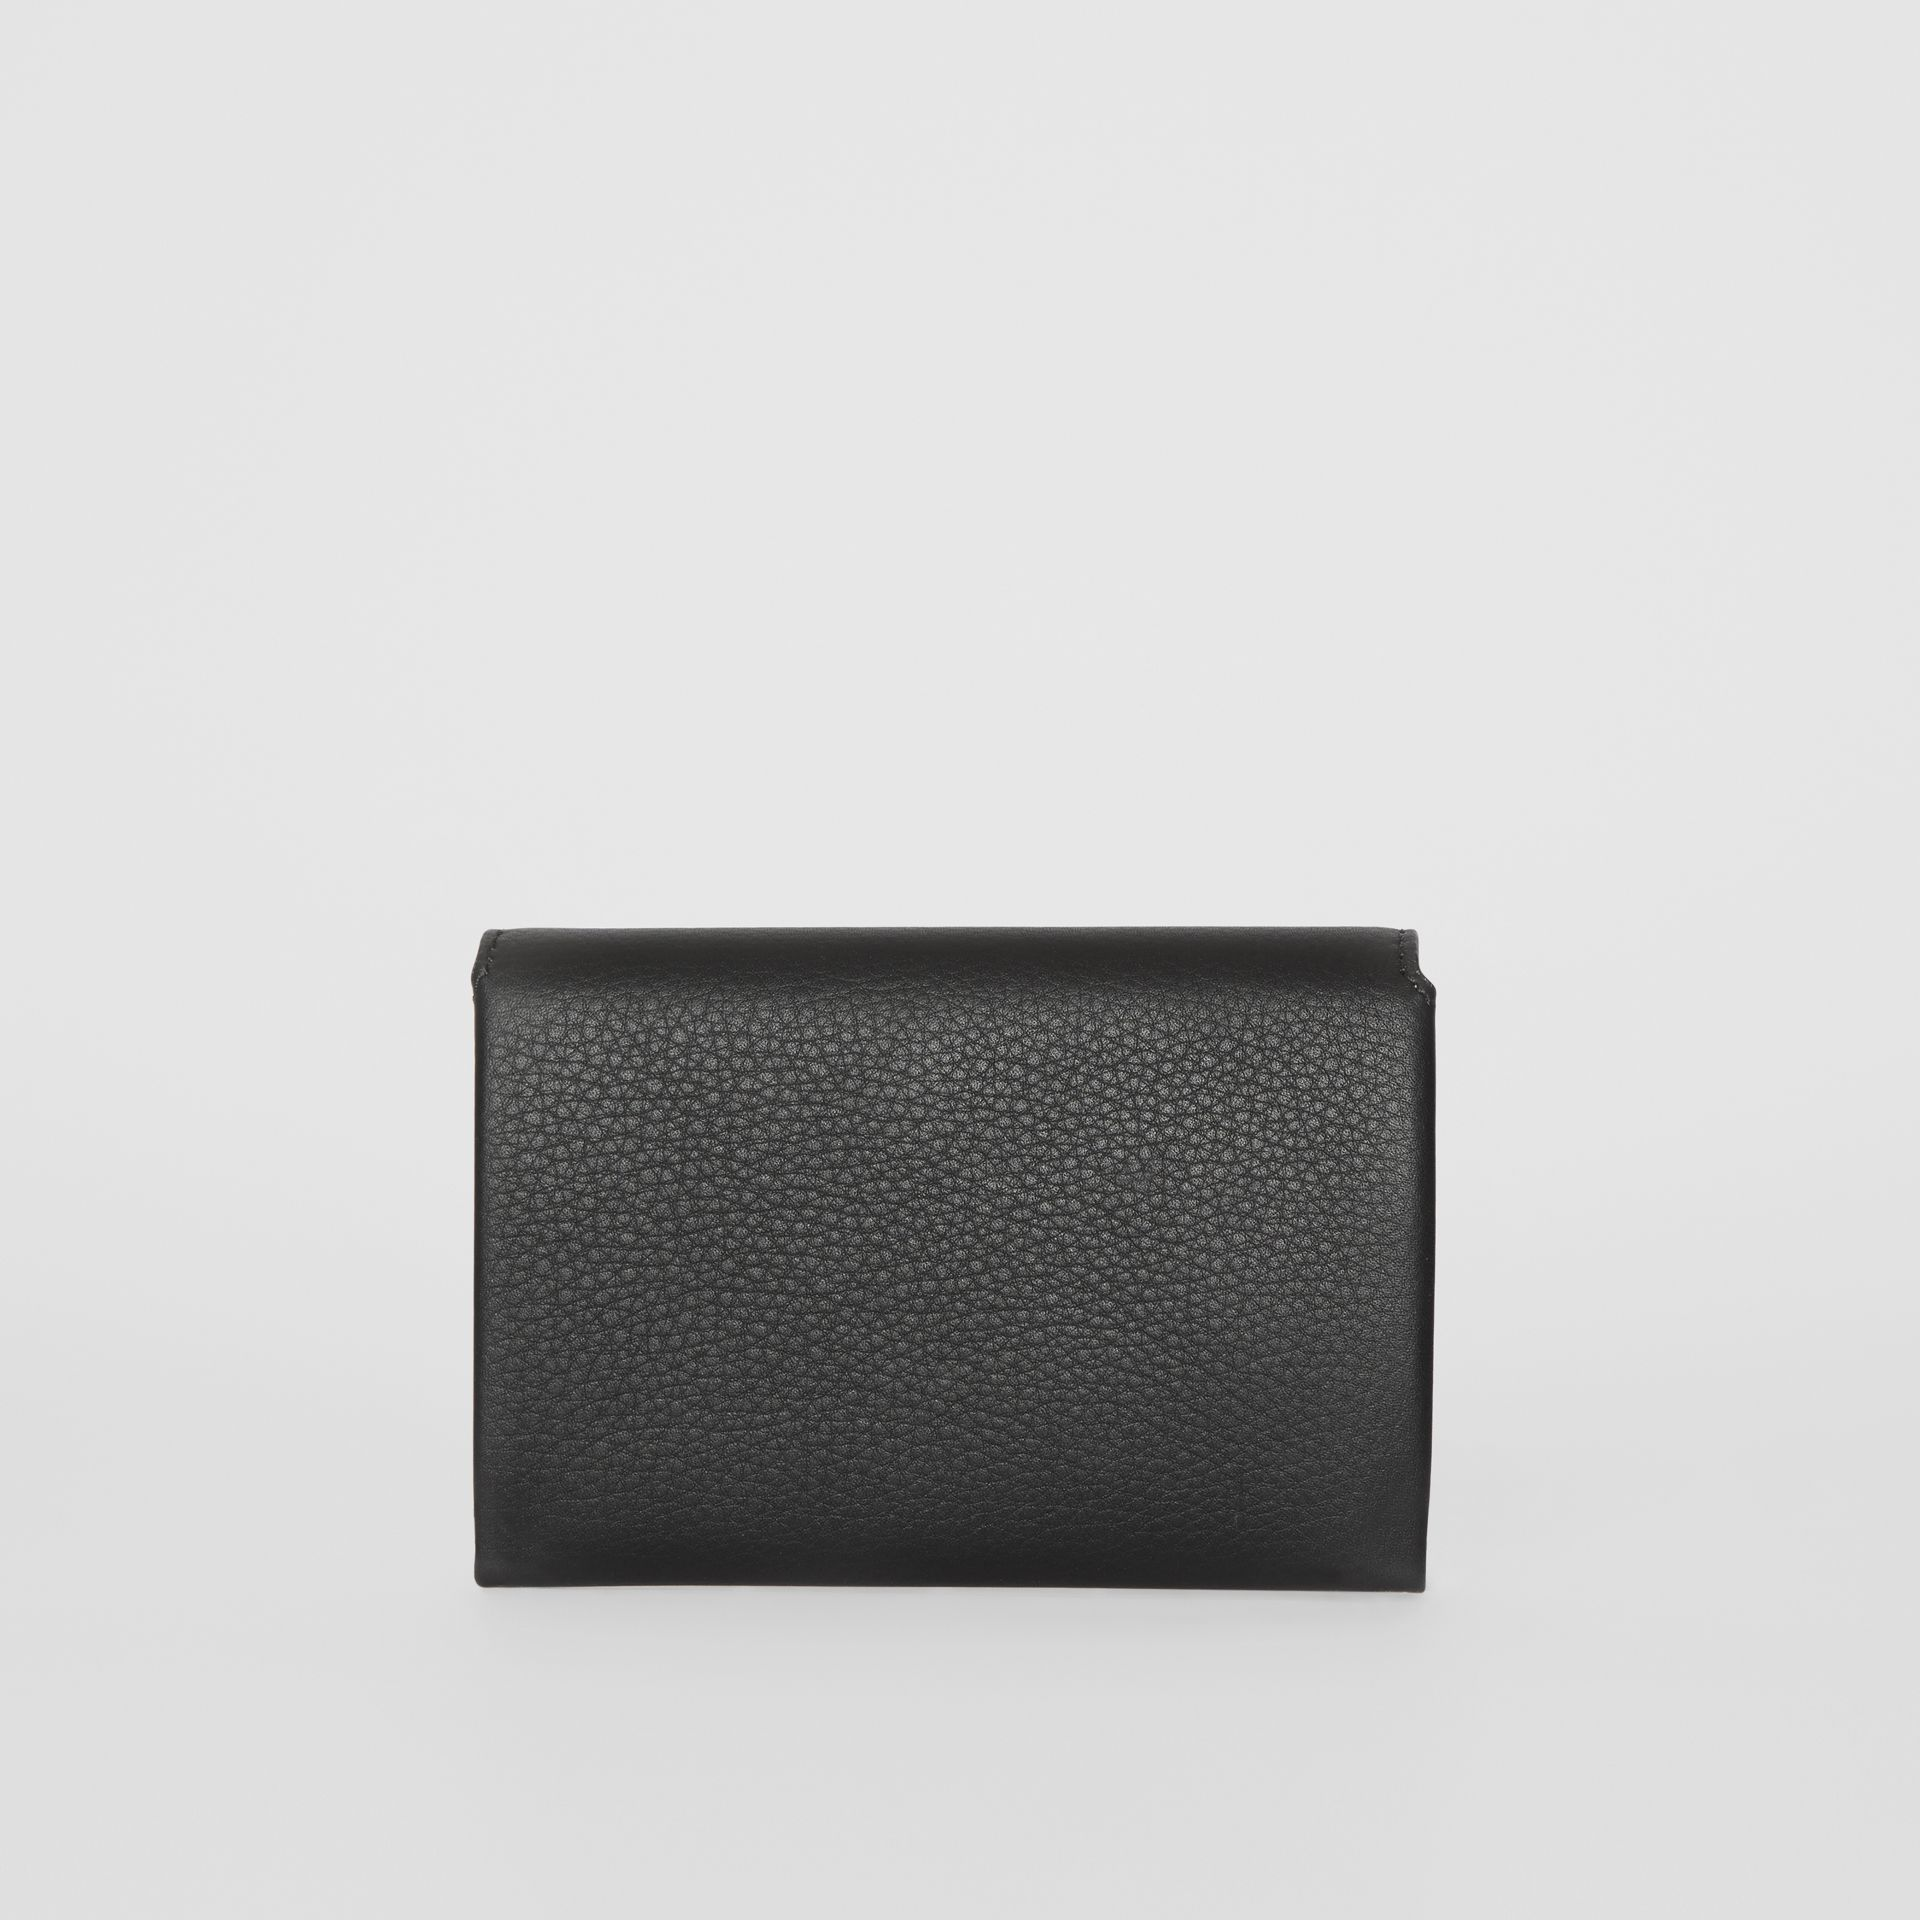 Triple Stud Leather Folding Wallet in Black - Women | Burberry - gallery image 5